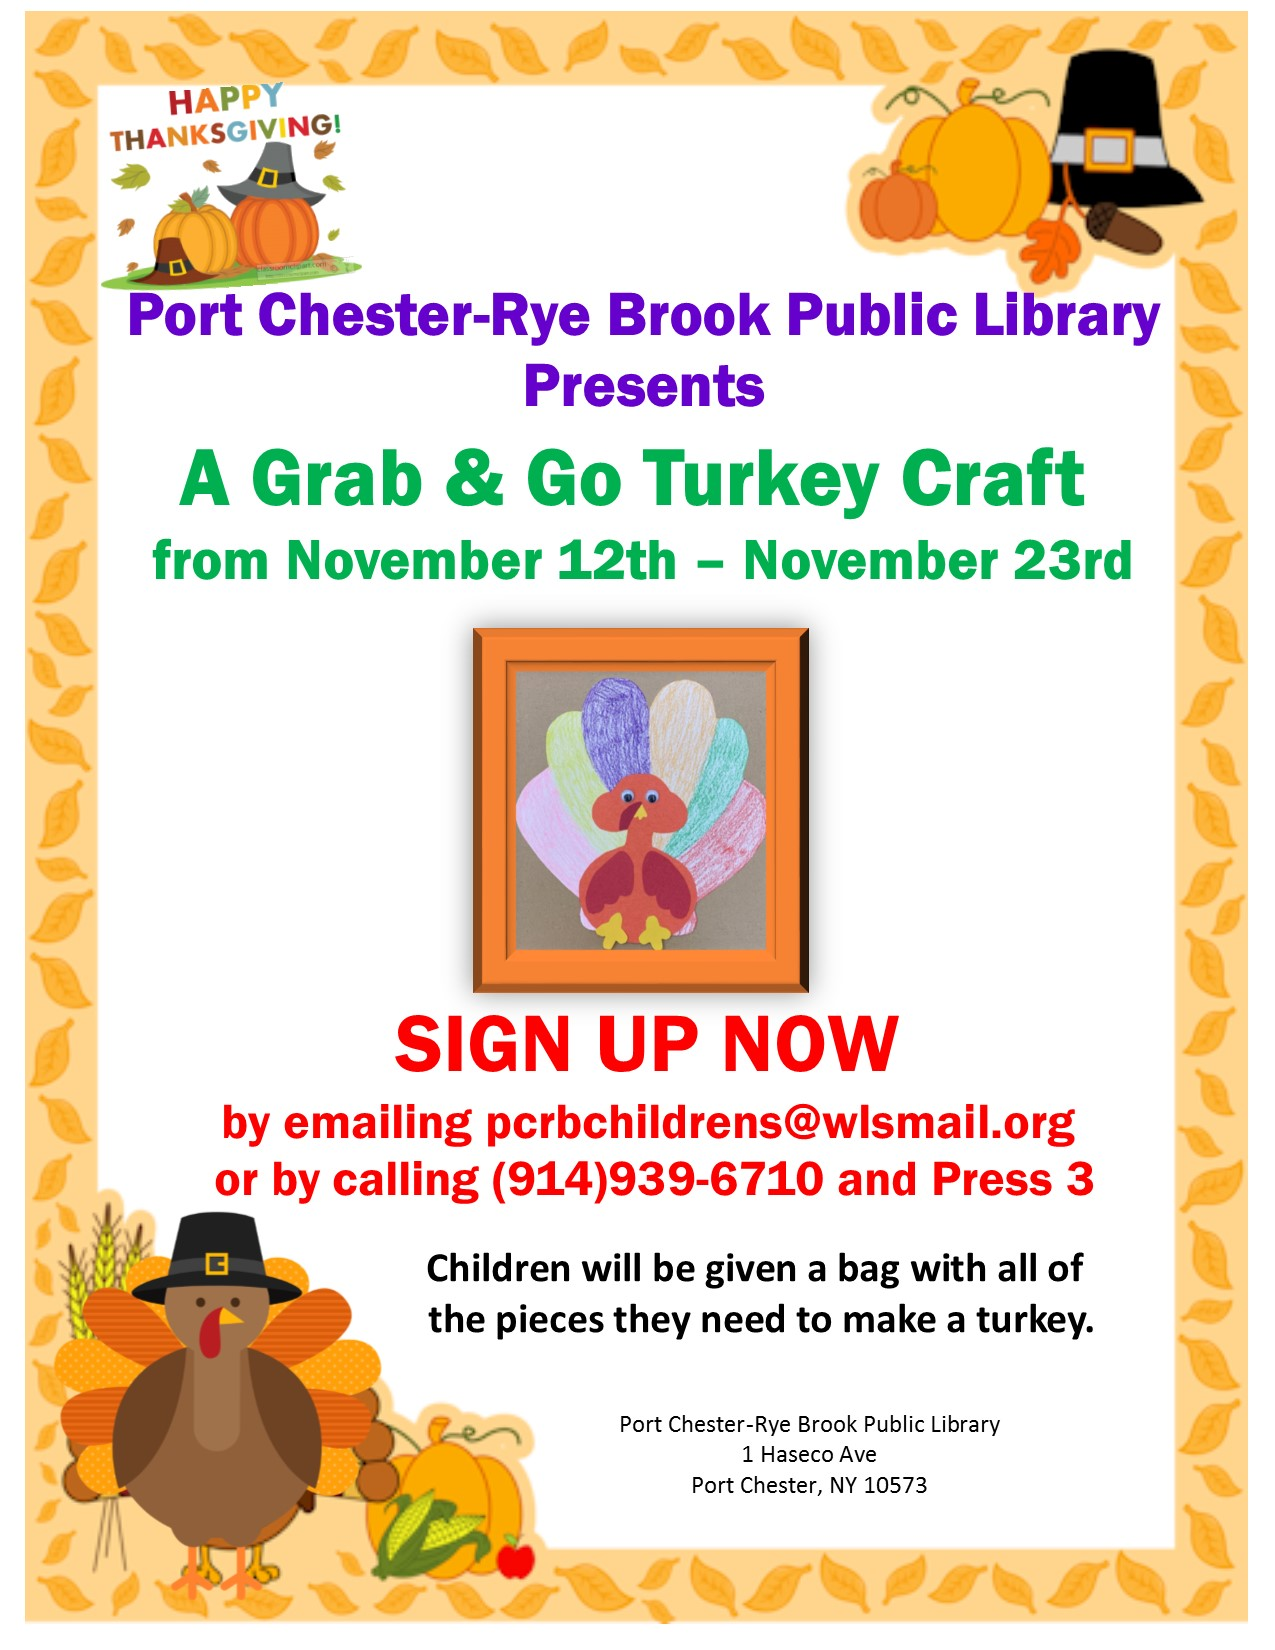 IN PERSON Grab and Go Thanksgiving Turkey Craft Pickup at the Port Chester-Rye Brook Public Library at Port Chester/Rye Brook Library